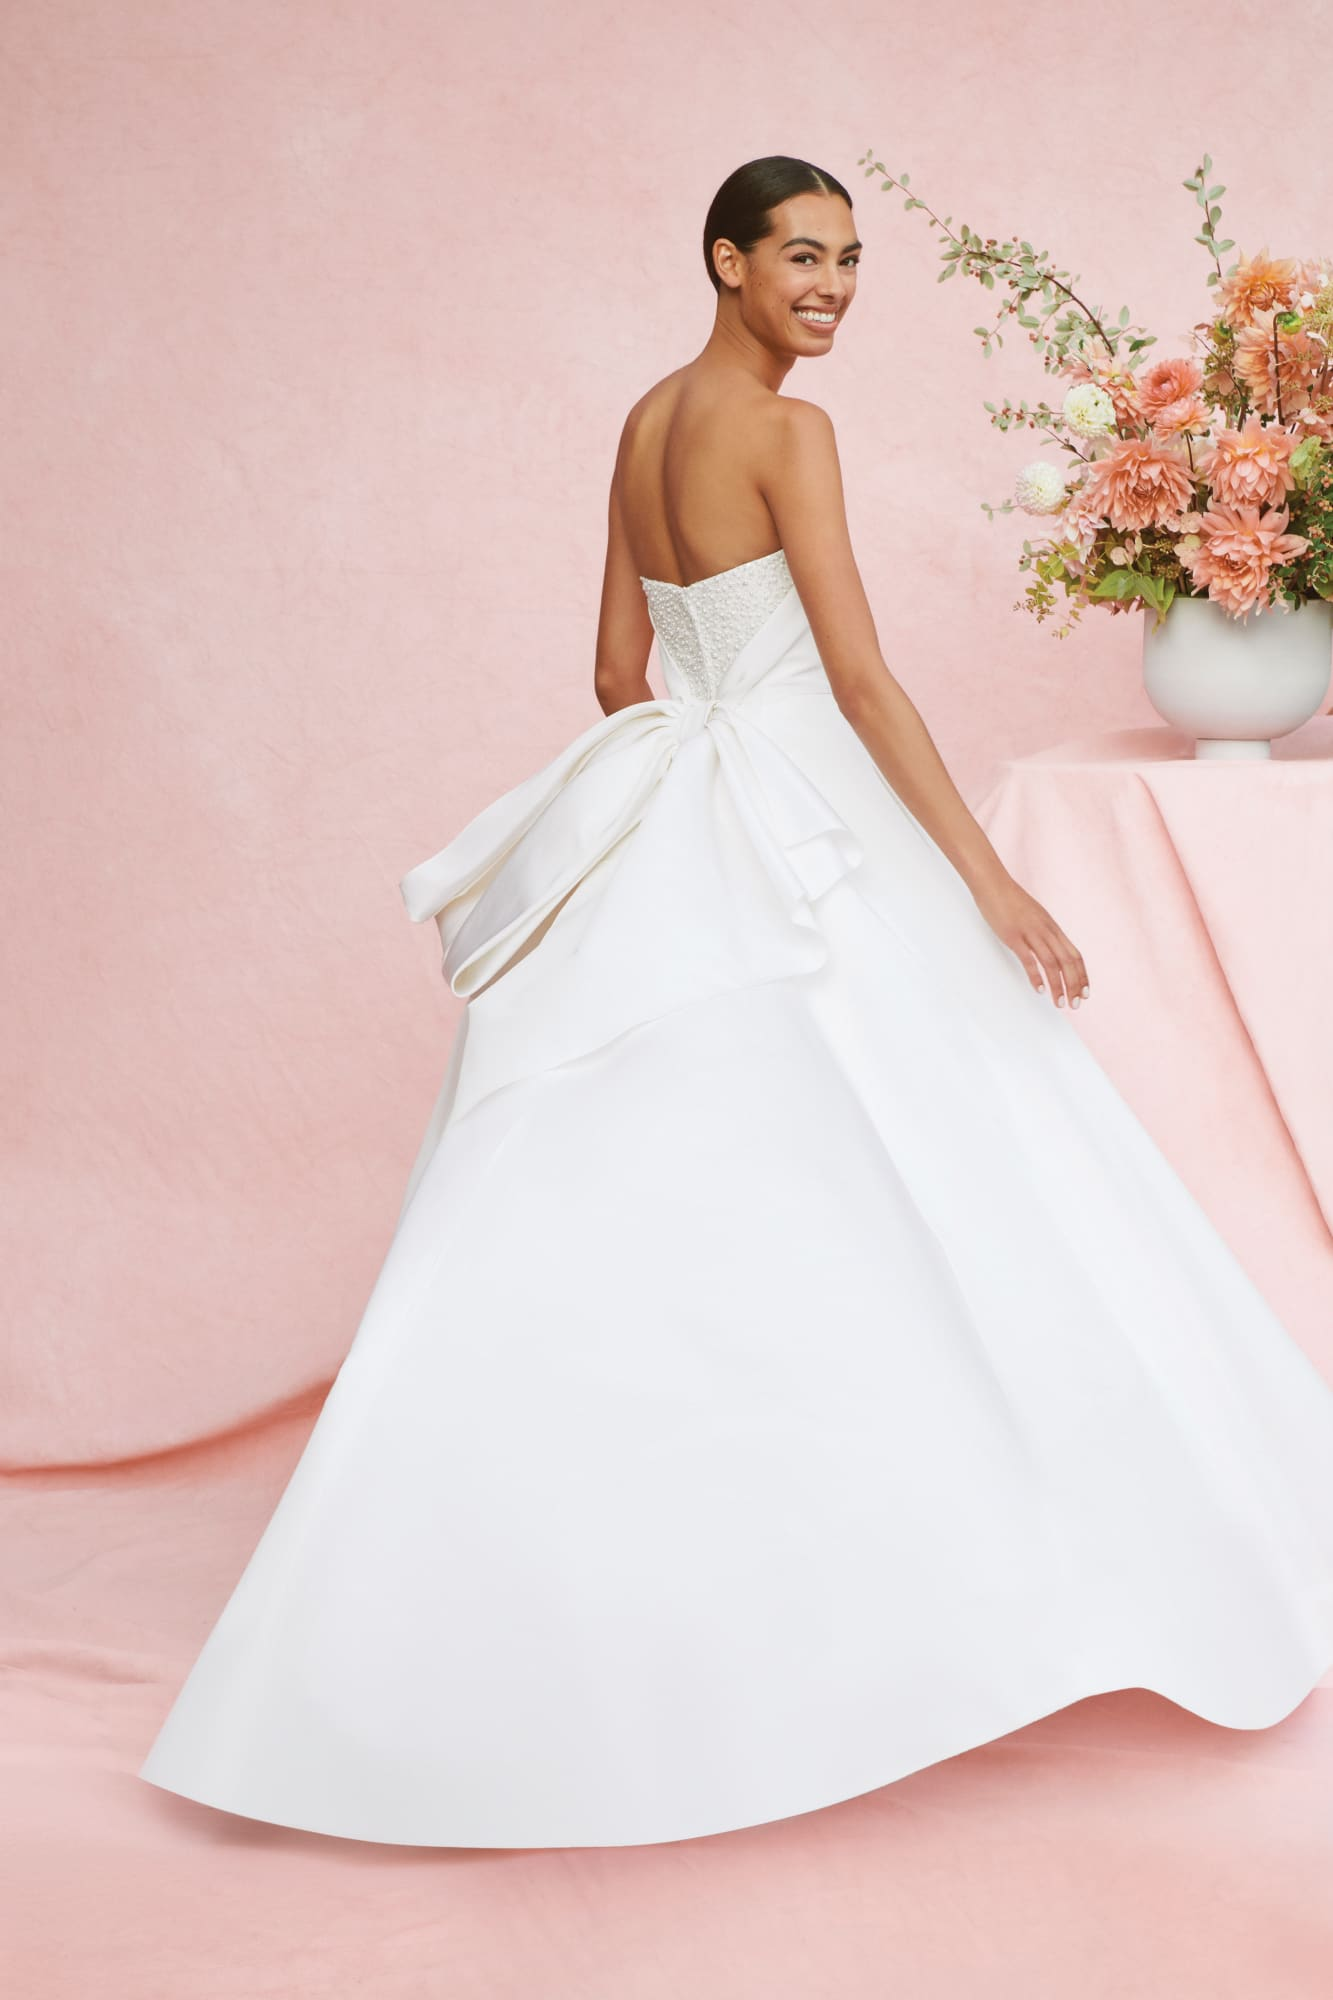 #carolinaherrera #2020wedding #2020weddingdresses #weddingtrend #weddingdresses #brides #bridalgown #modernwedding